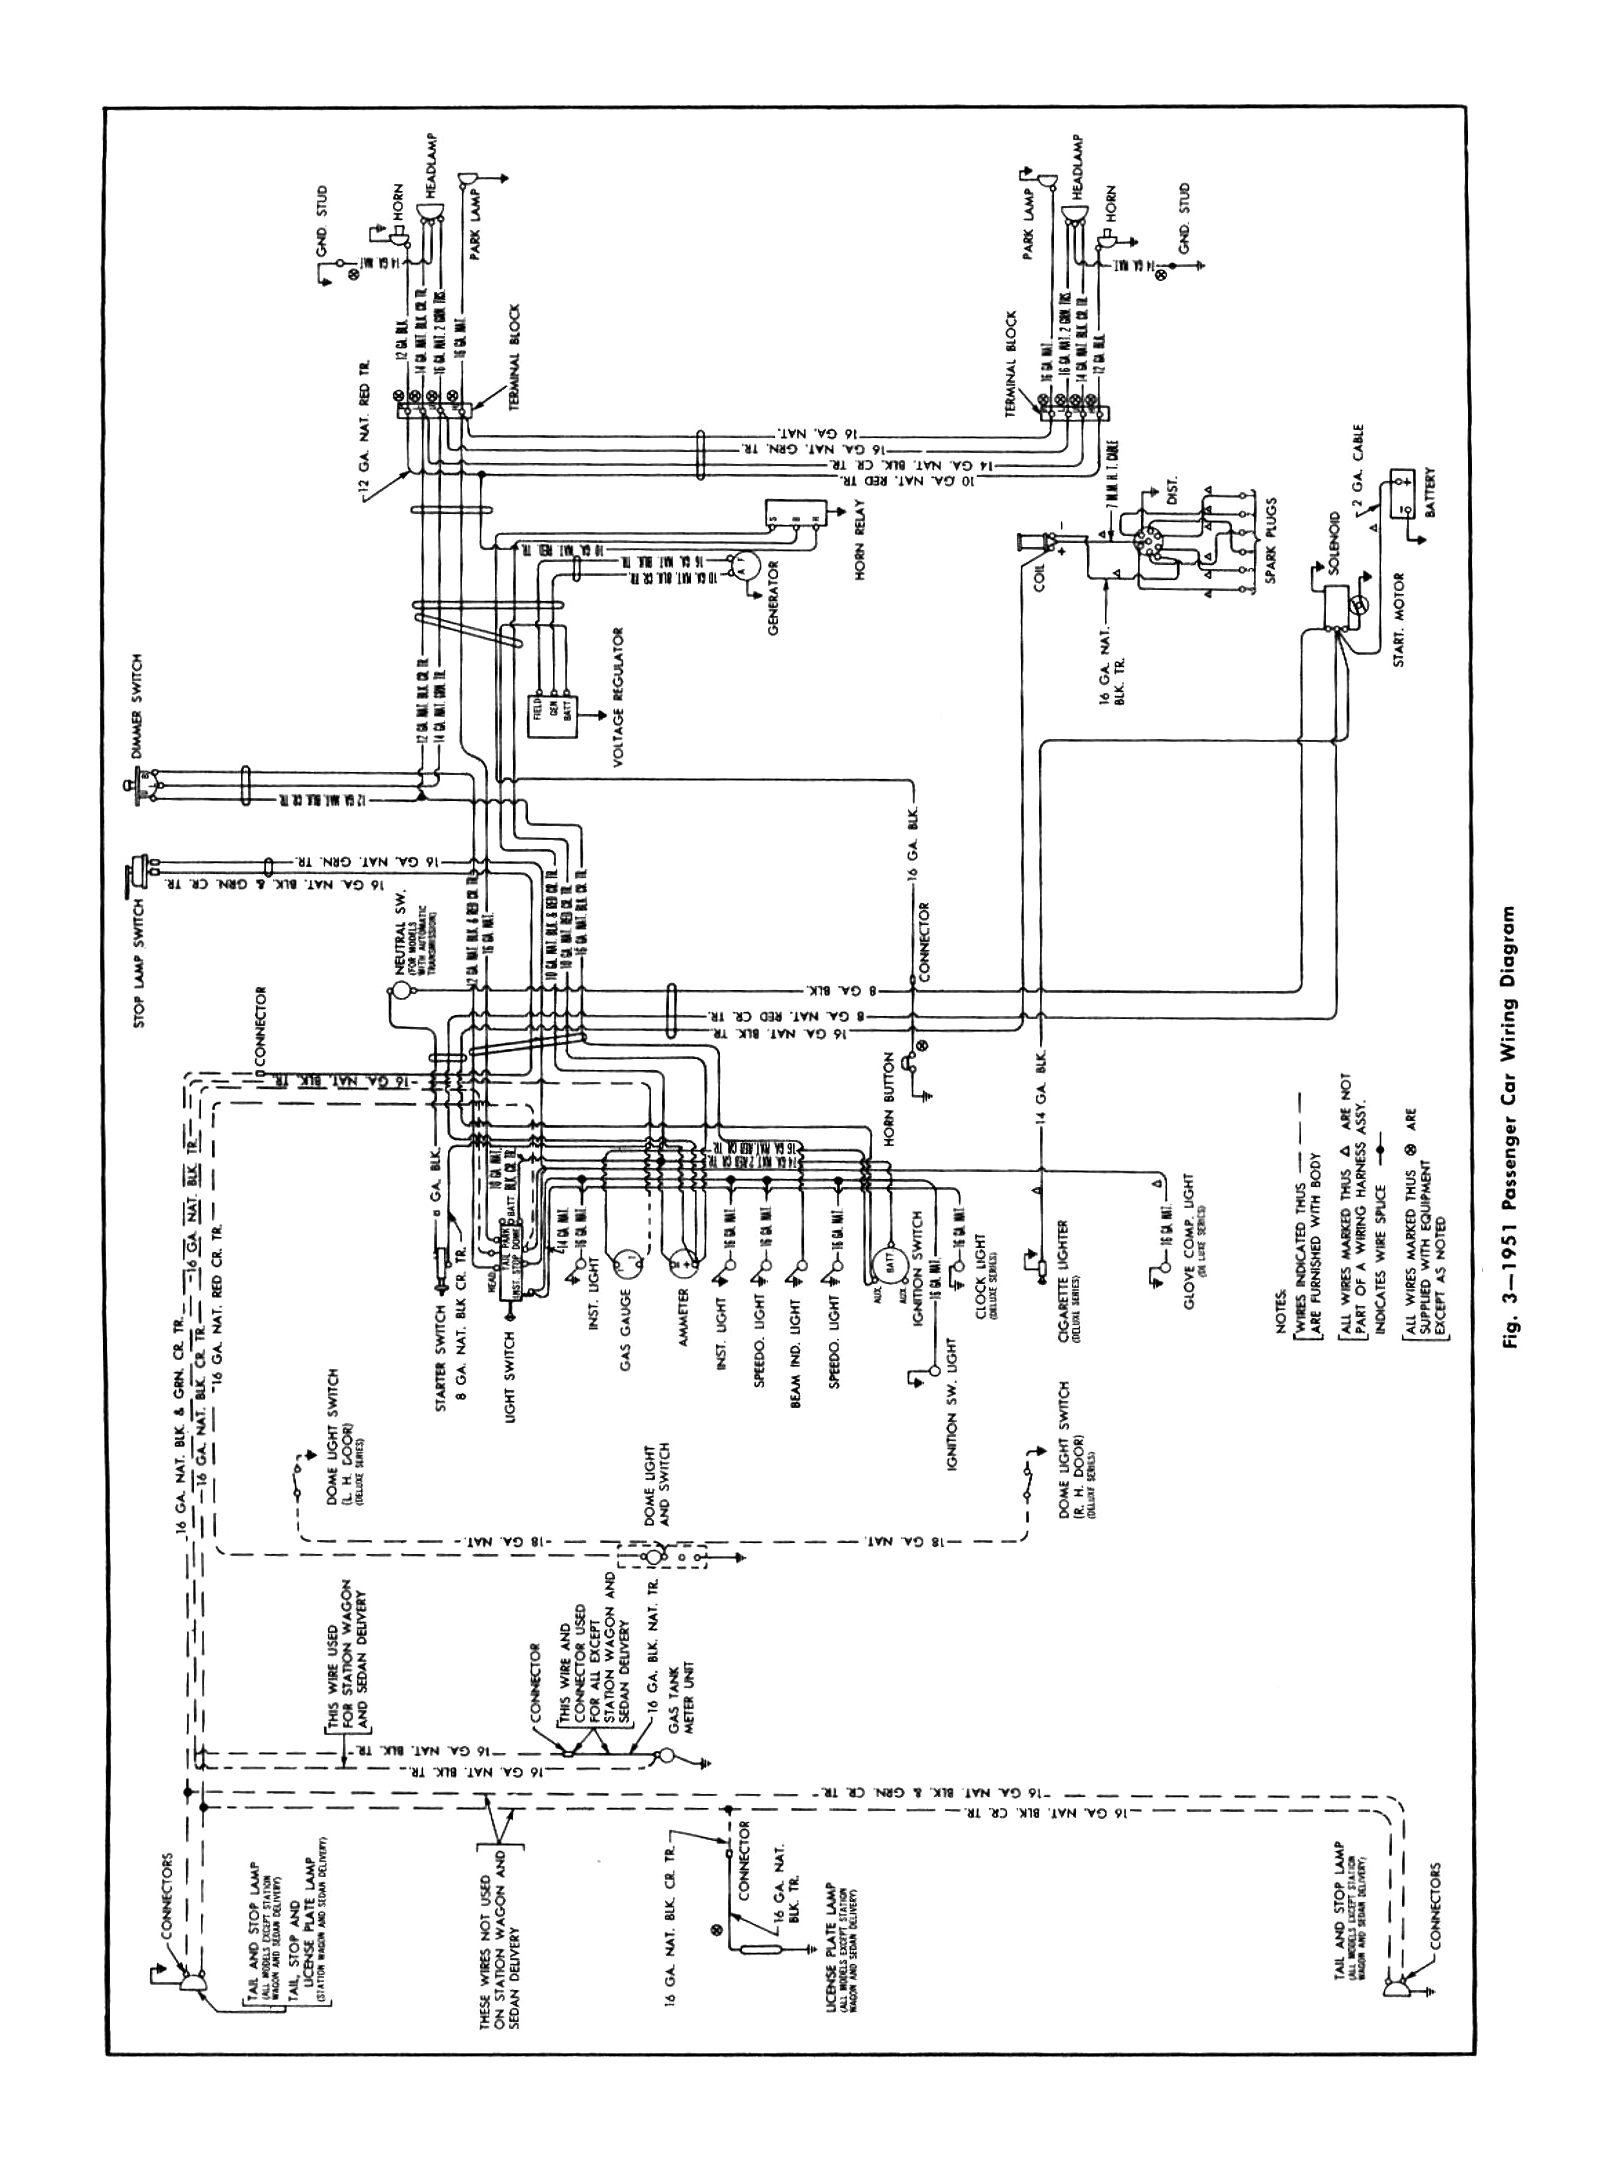 Diagram Wiring Diagrams For Chevy Truck Full